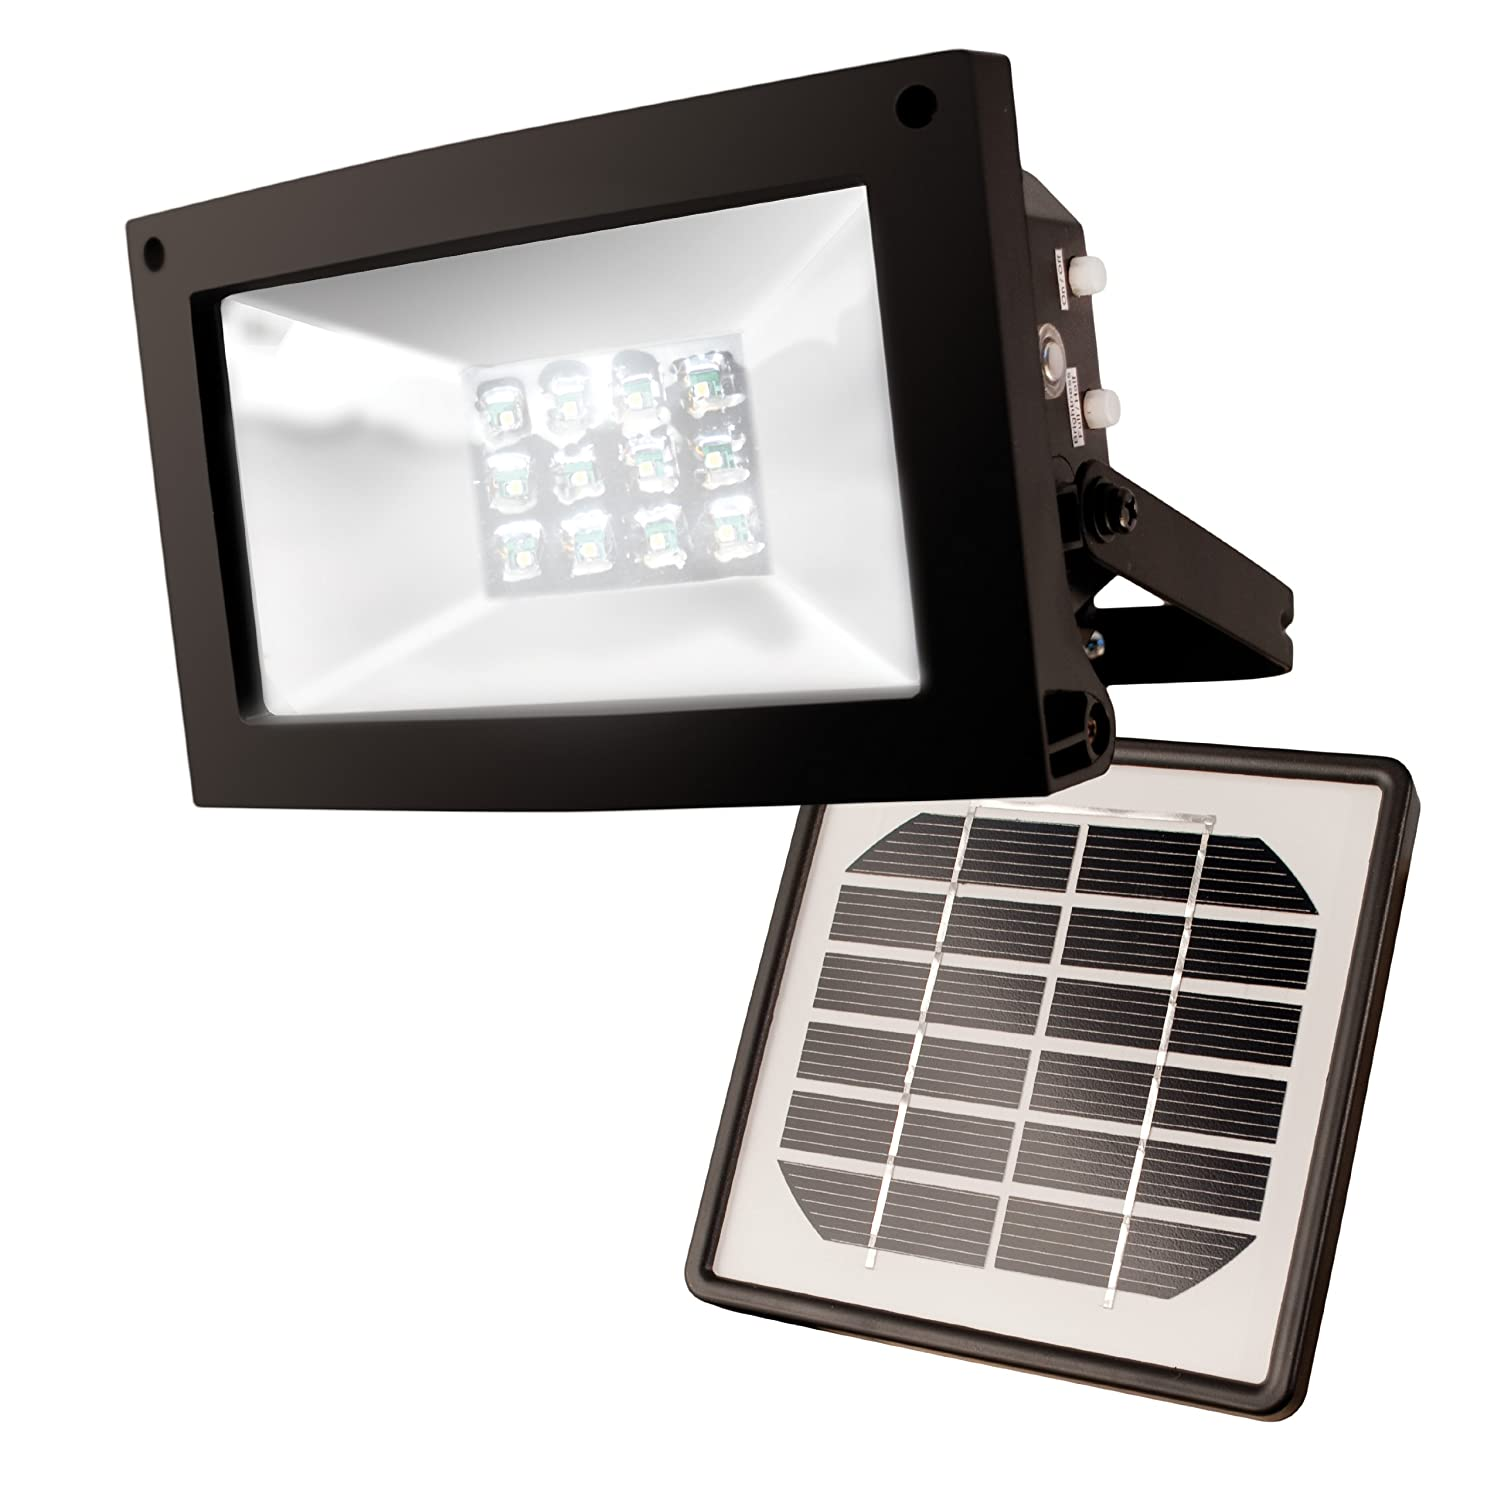 Maxsa Solar-Powered 10 Hour Floodlight $46.04